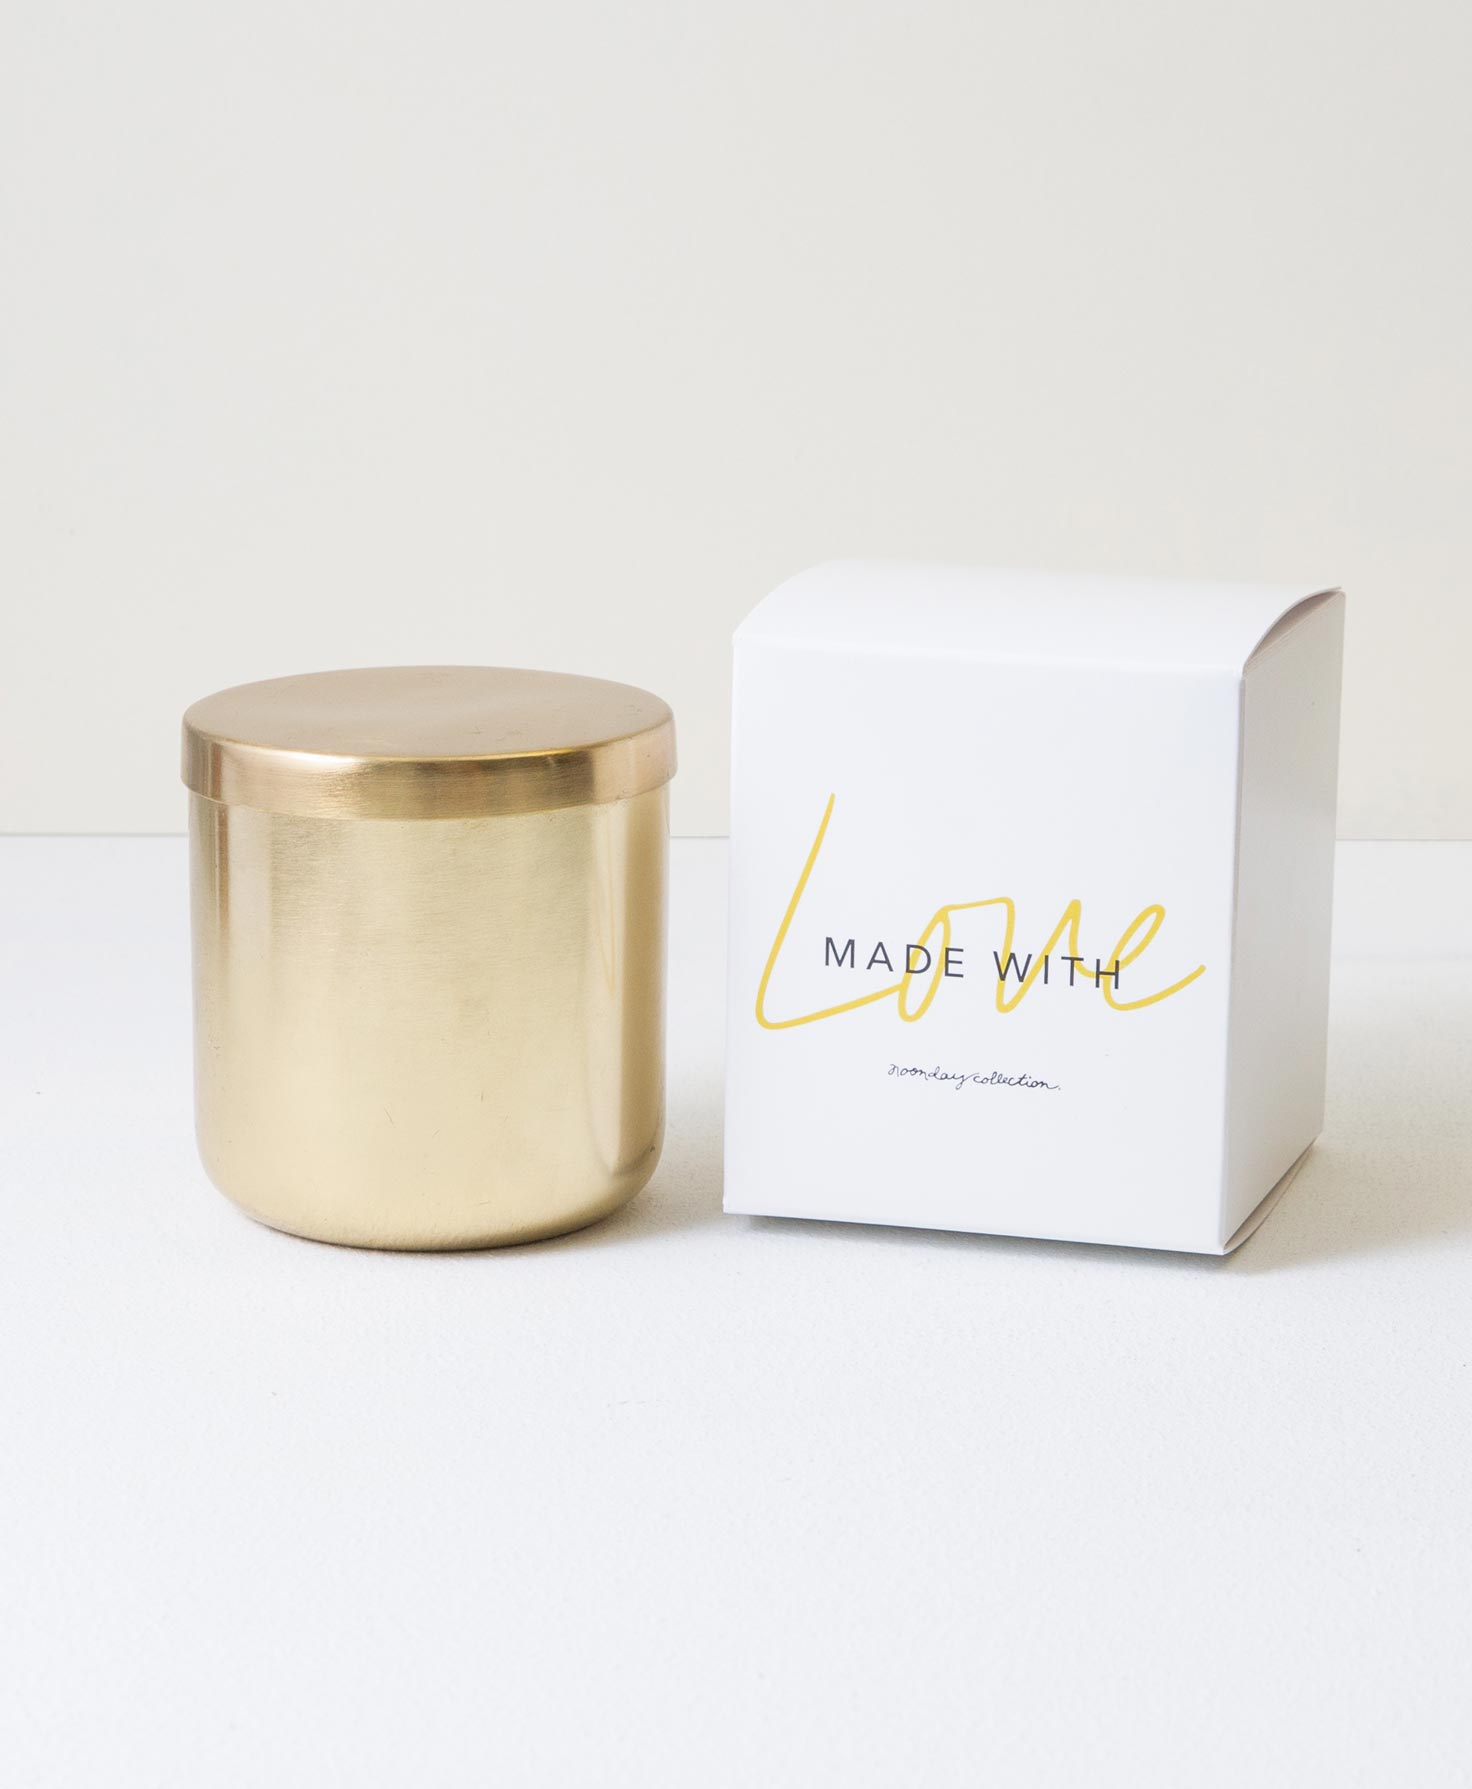 The Bright Candle is lit with its brass lid sitting next to it. The candle is contained in a cylindrical brass vessel with a handcrafted, brushed finish. The soy candle itself is cream colored.